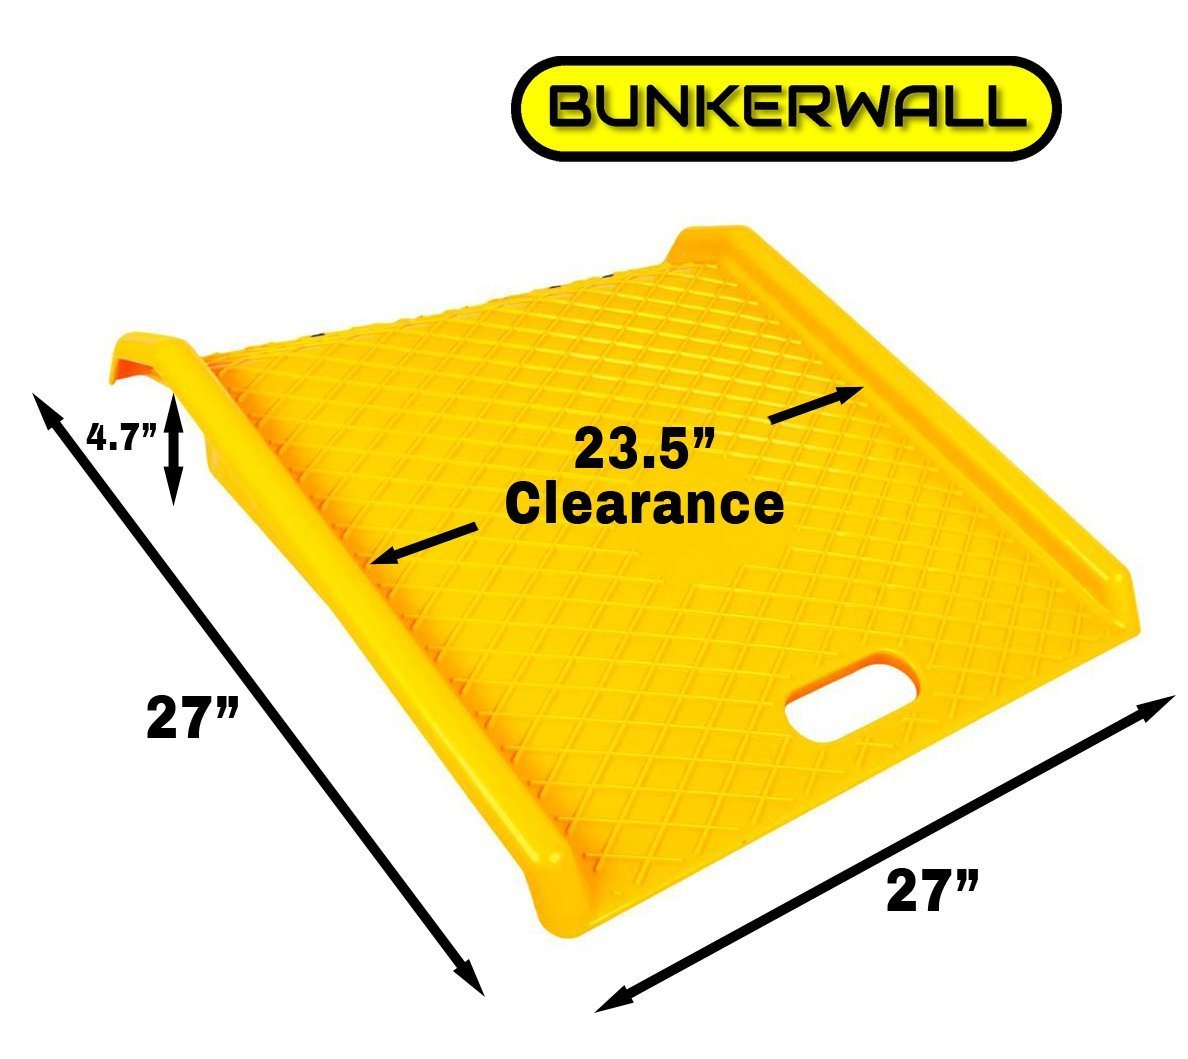 Curb Ramp - Heavy Duty 1000 Lbs Load Capacity - Yellow High Density Polyethylene for Hand Truck Delivery by BUNKERWALL (Image #2)